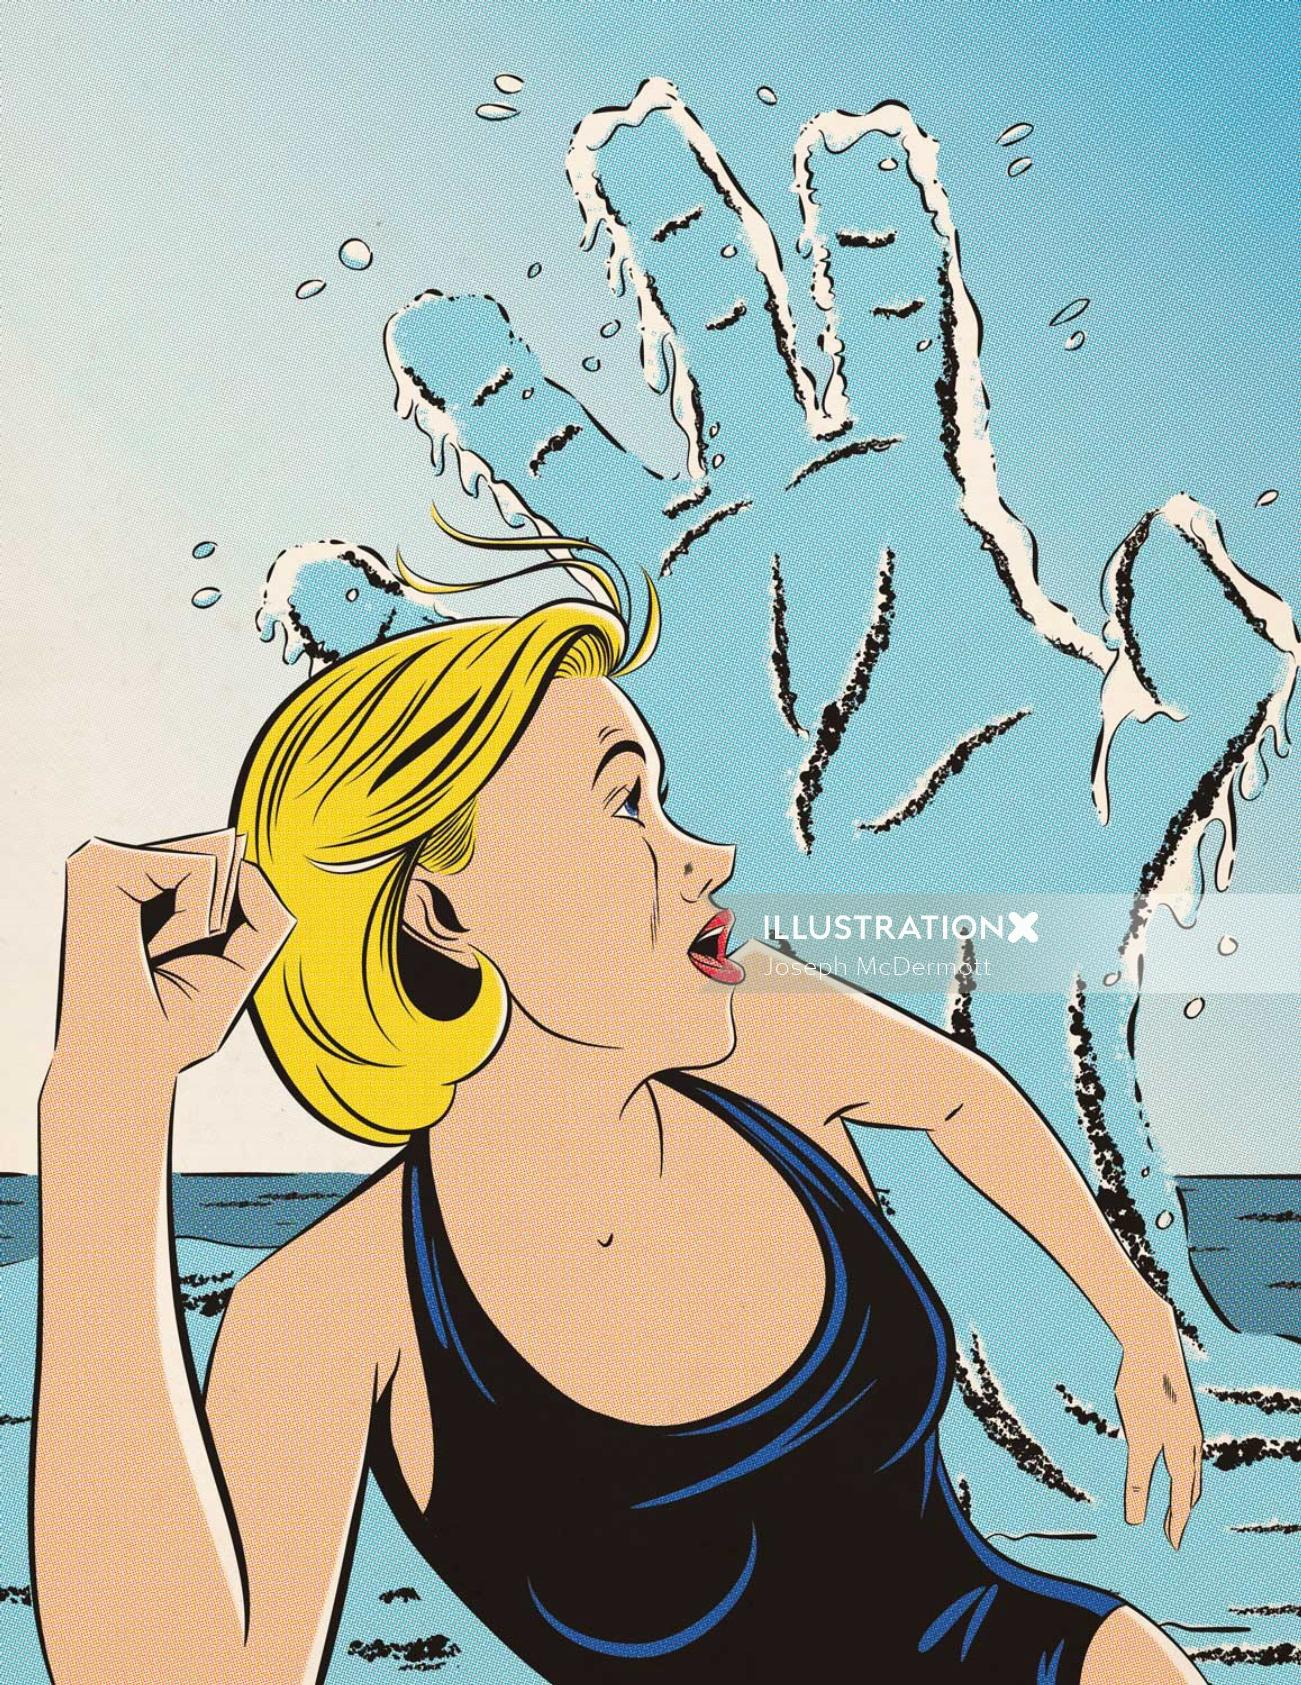 Swimming woman chased by scary had tides illustration